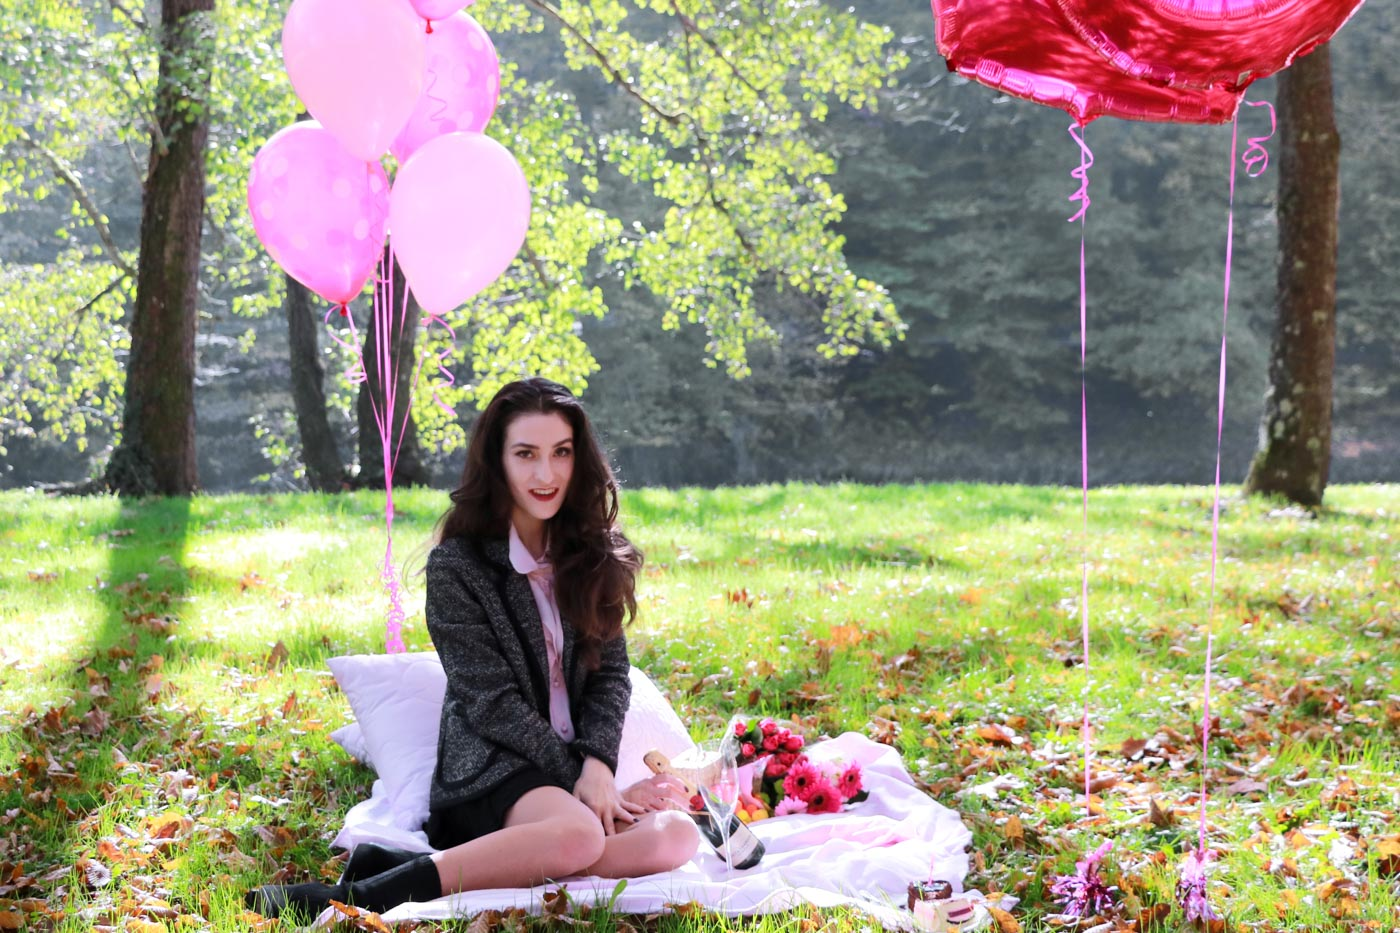 Fashion Blogger Veronika Lipar of Brunette from Wall Street having a pink picnic to celebrate her 20-something birthday